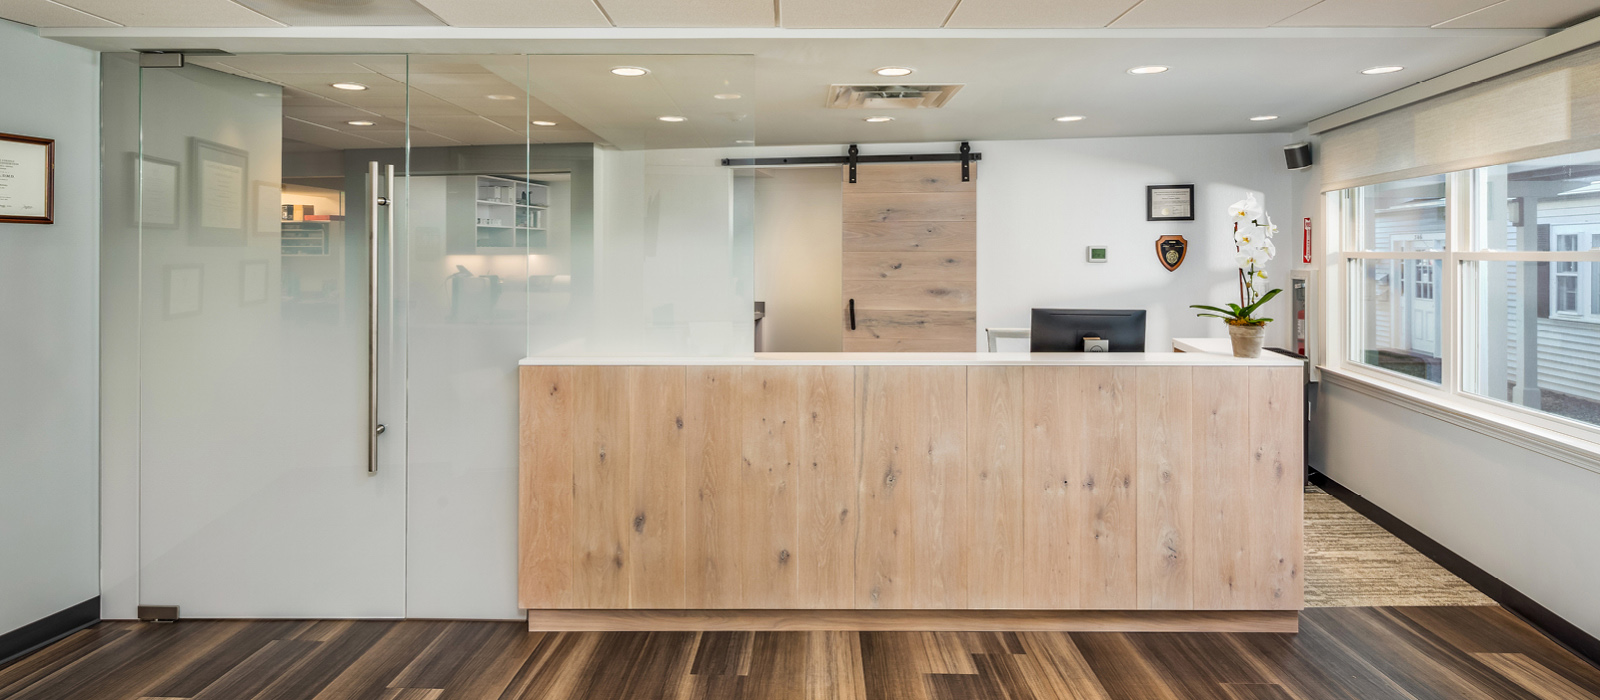 Direct Pay Dental Care reception area